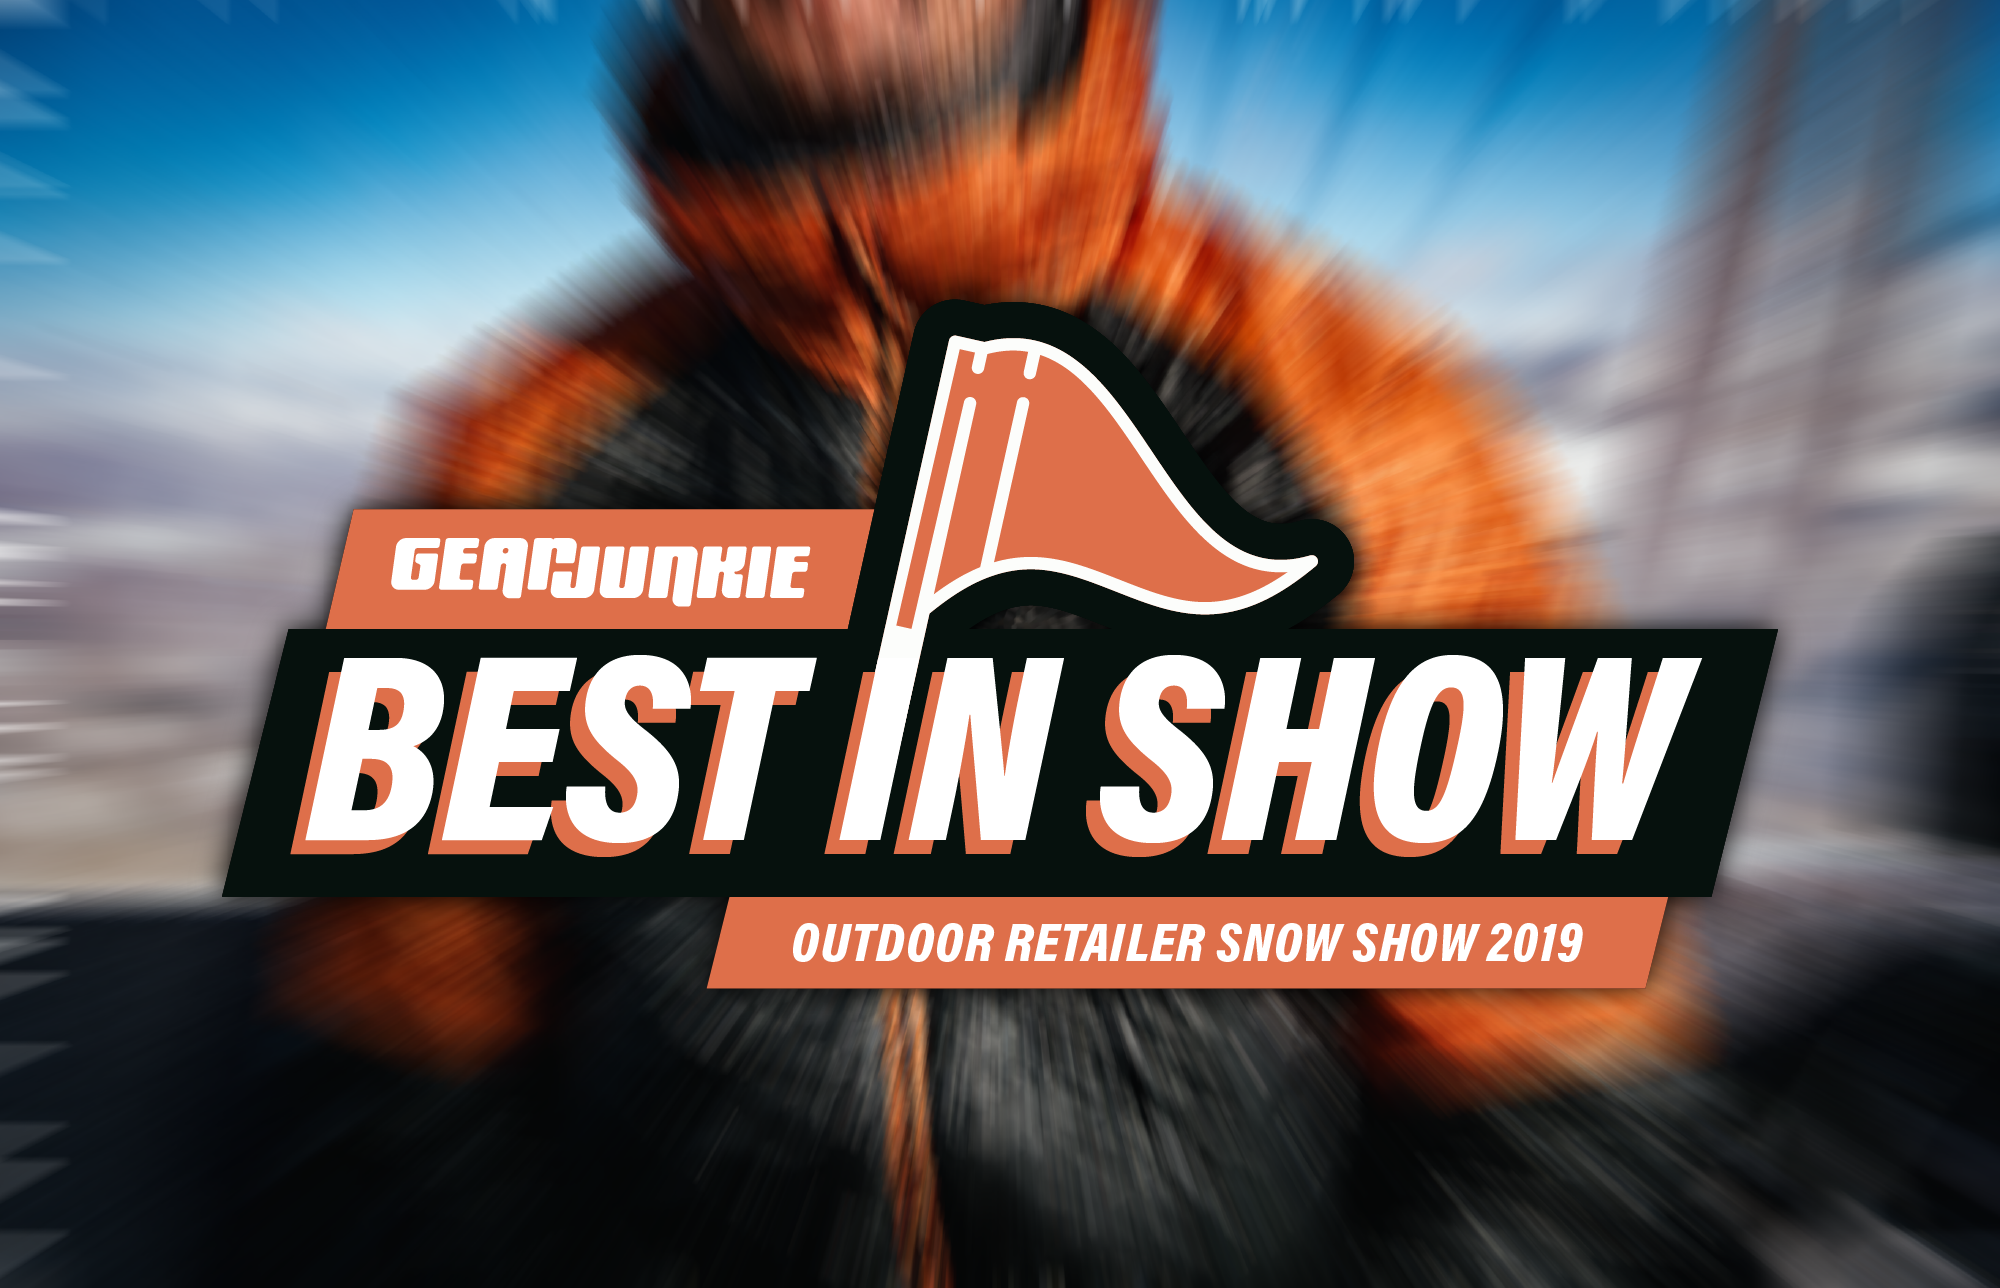 Outdoor Retailer Snow Show 'Best In Show' Winter Gear 2019